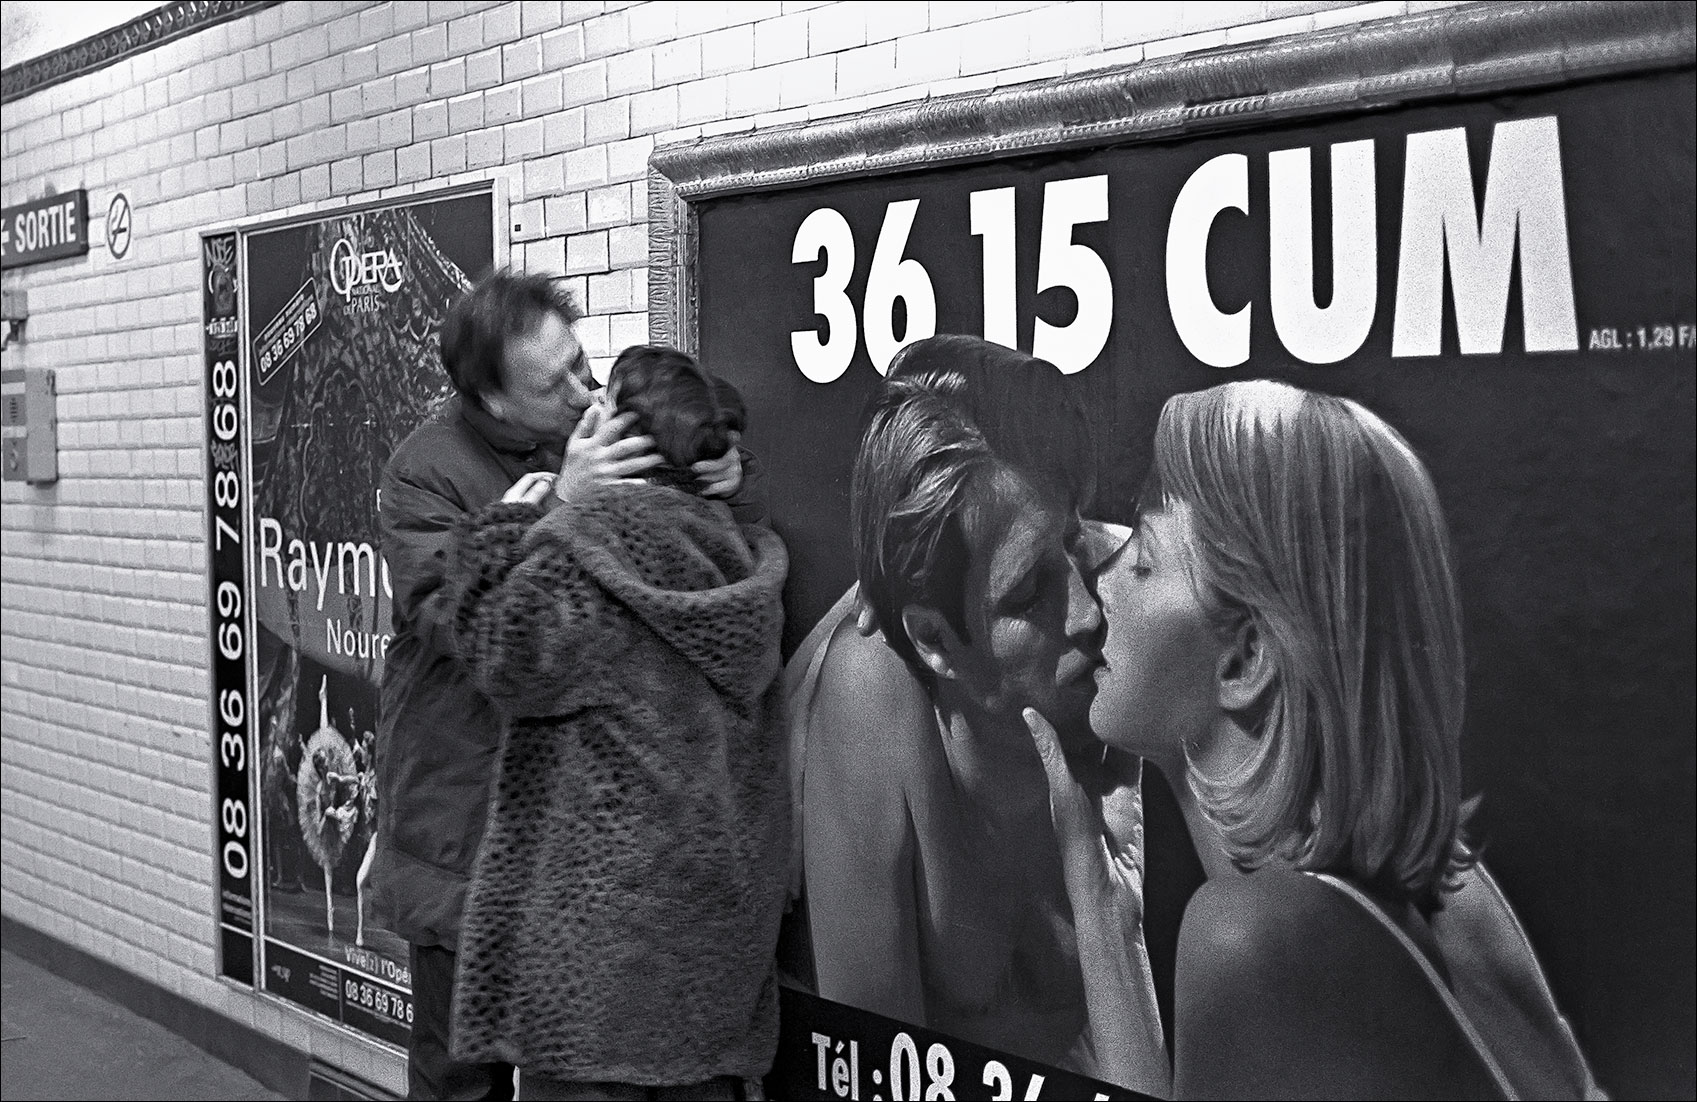 paris_subway_kiss-Edit